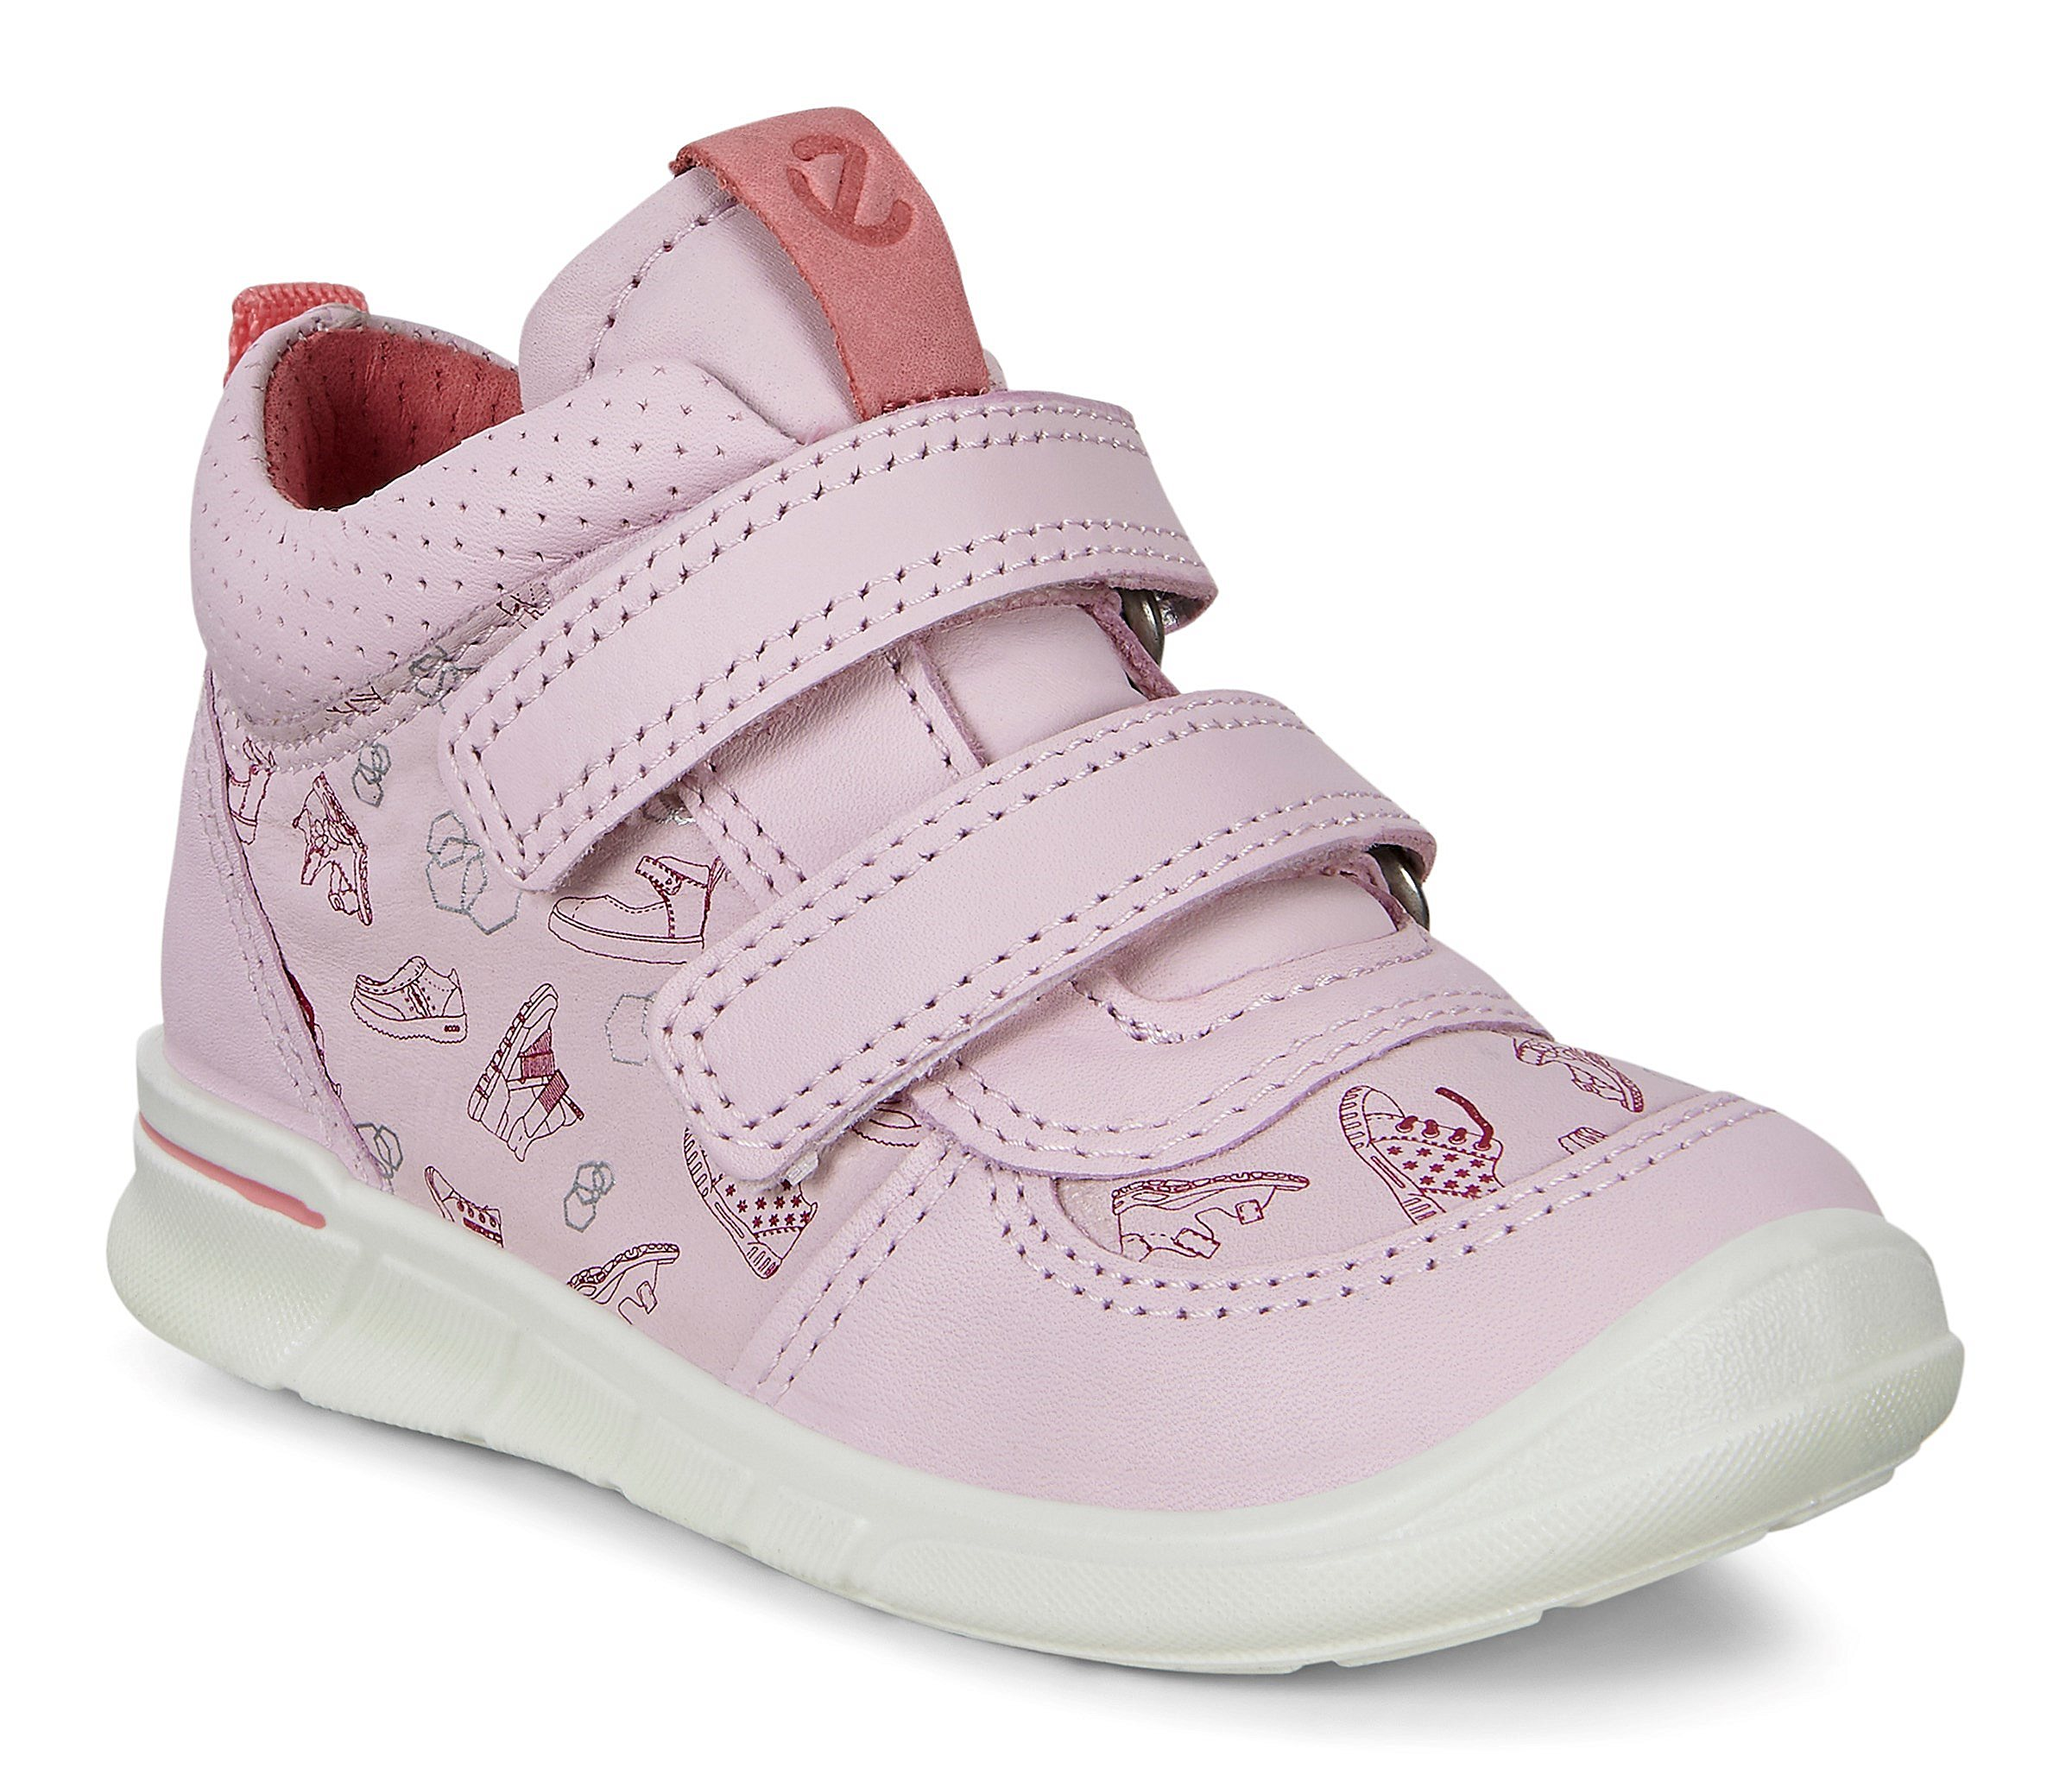 Infants' Shoes | Buy from the Official